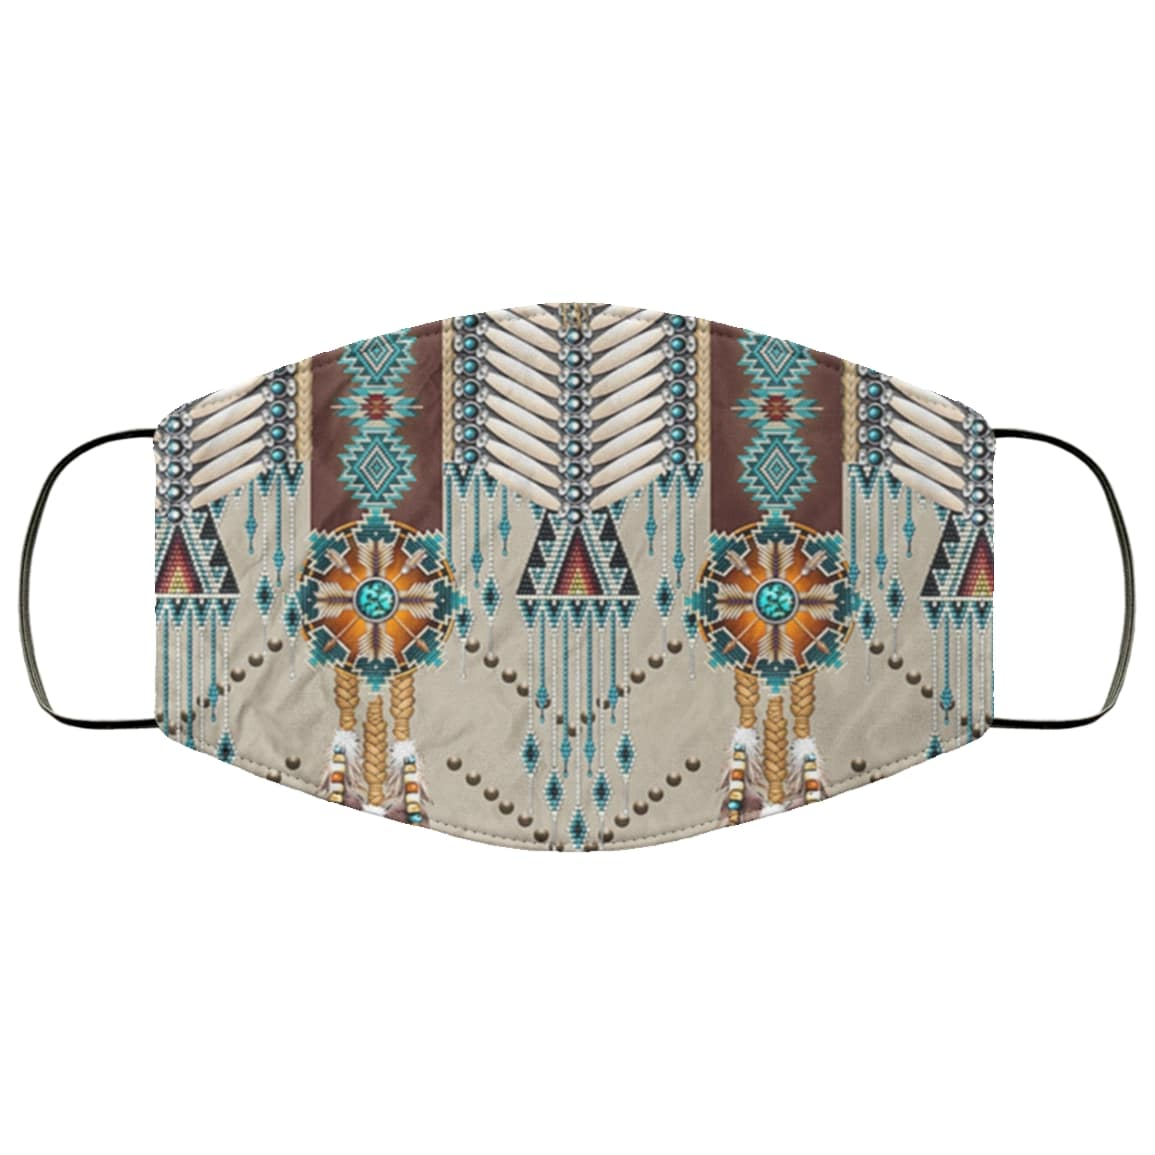 Native american culture symbol all over printed face mask 1